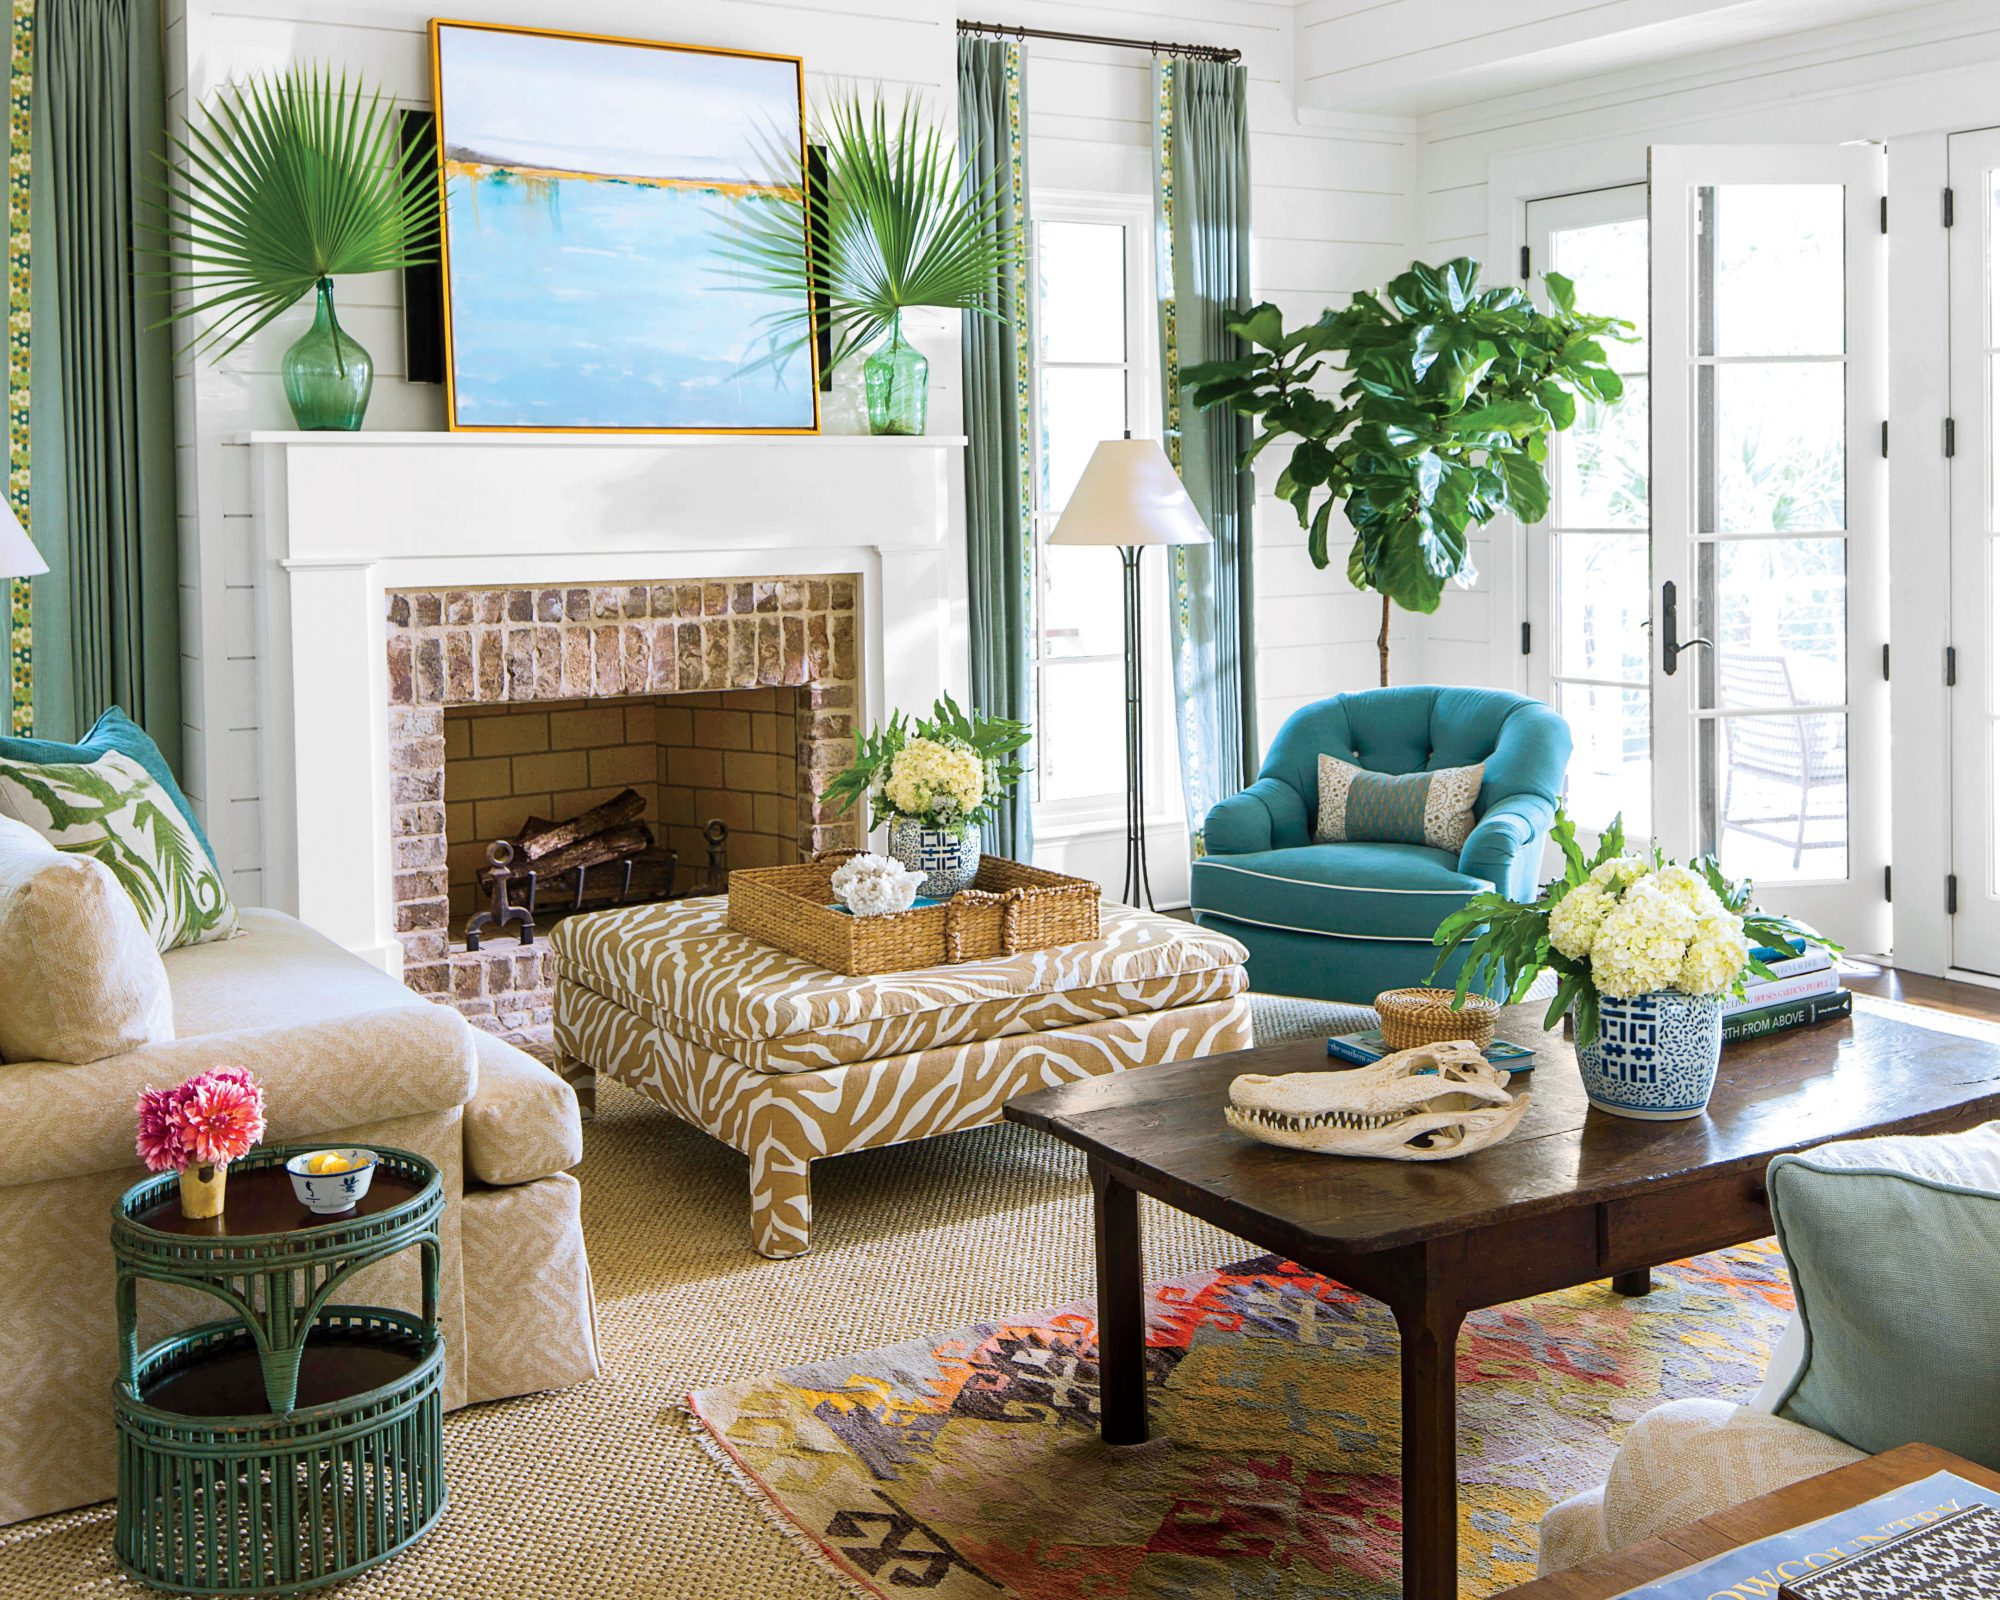 Living Room Decor Ideas Pictures Beauteous 106 Living Room Decorating Ideas  Southern Living Design Inspiration